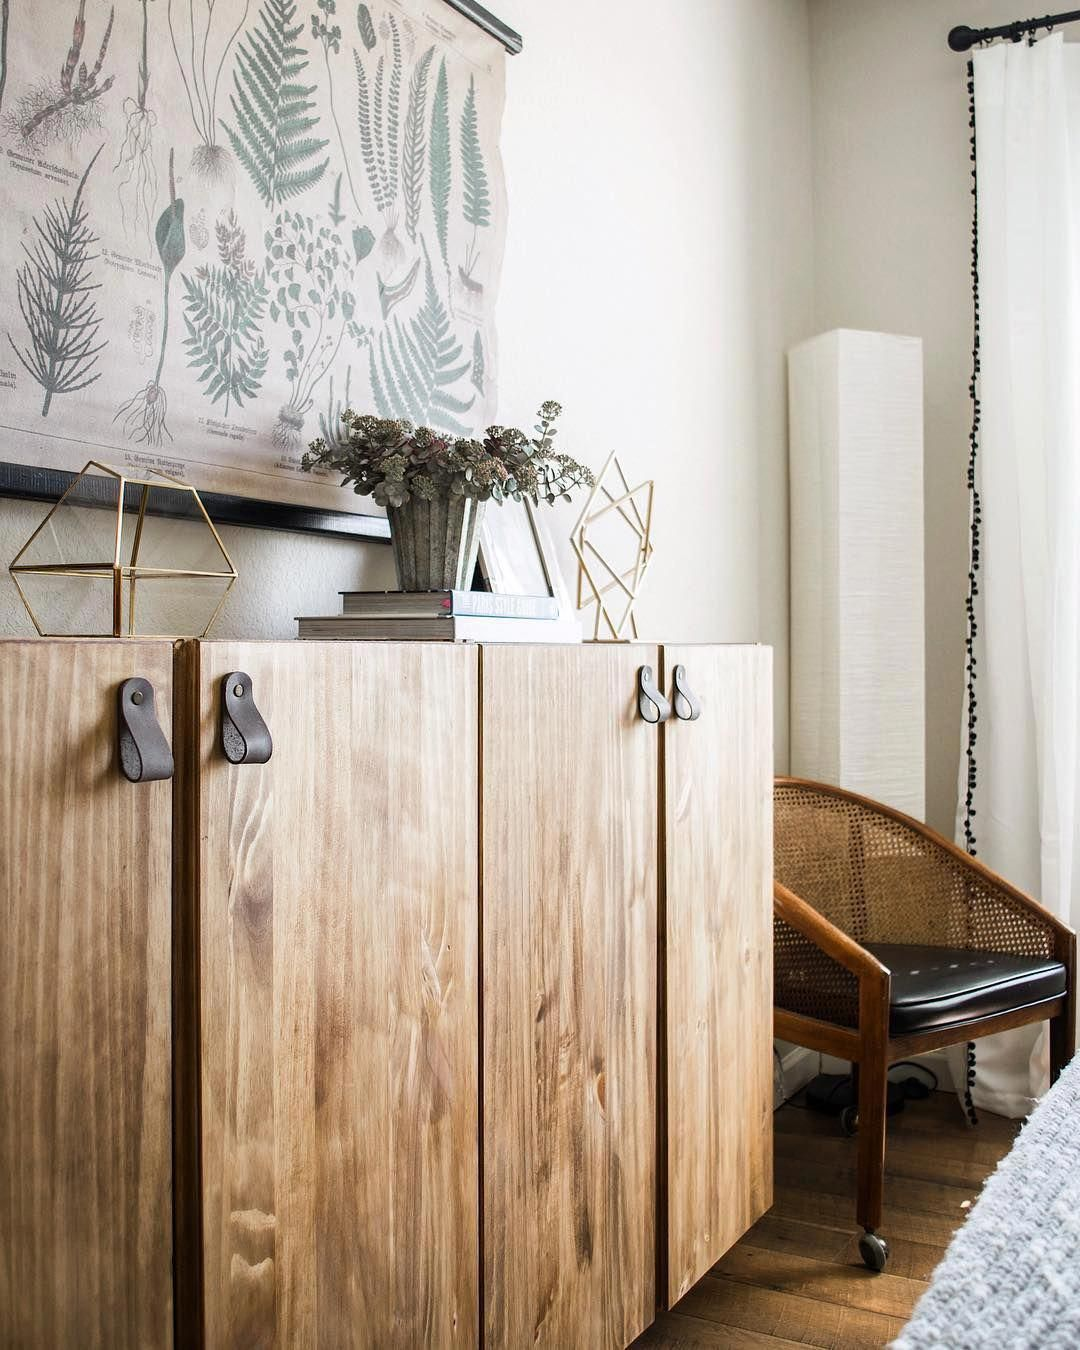 wooden cabinet, wooden floor, white wall, wooden chair with black leather cushion